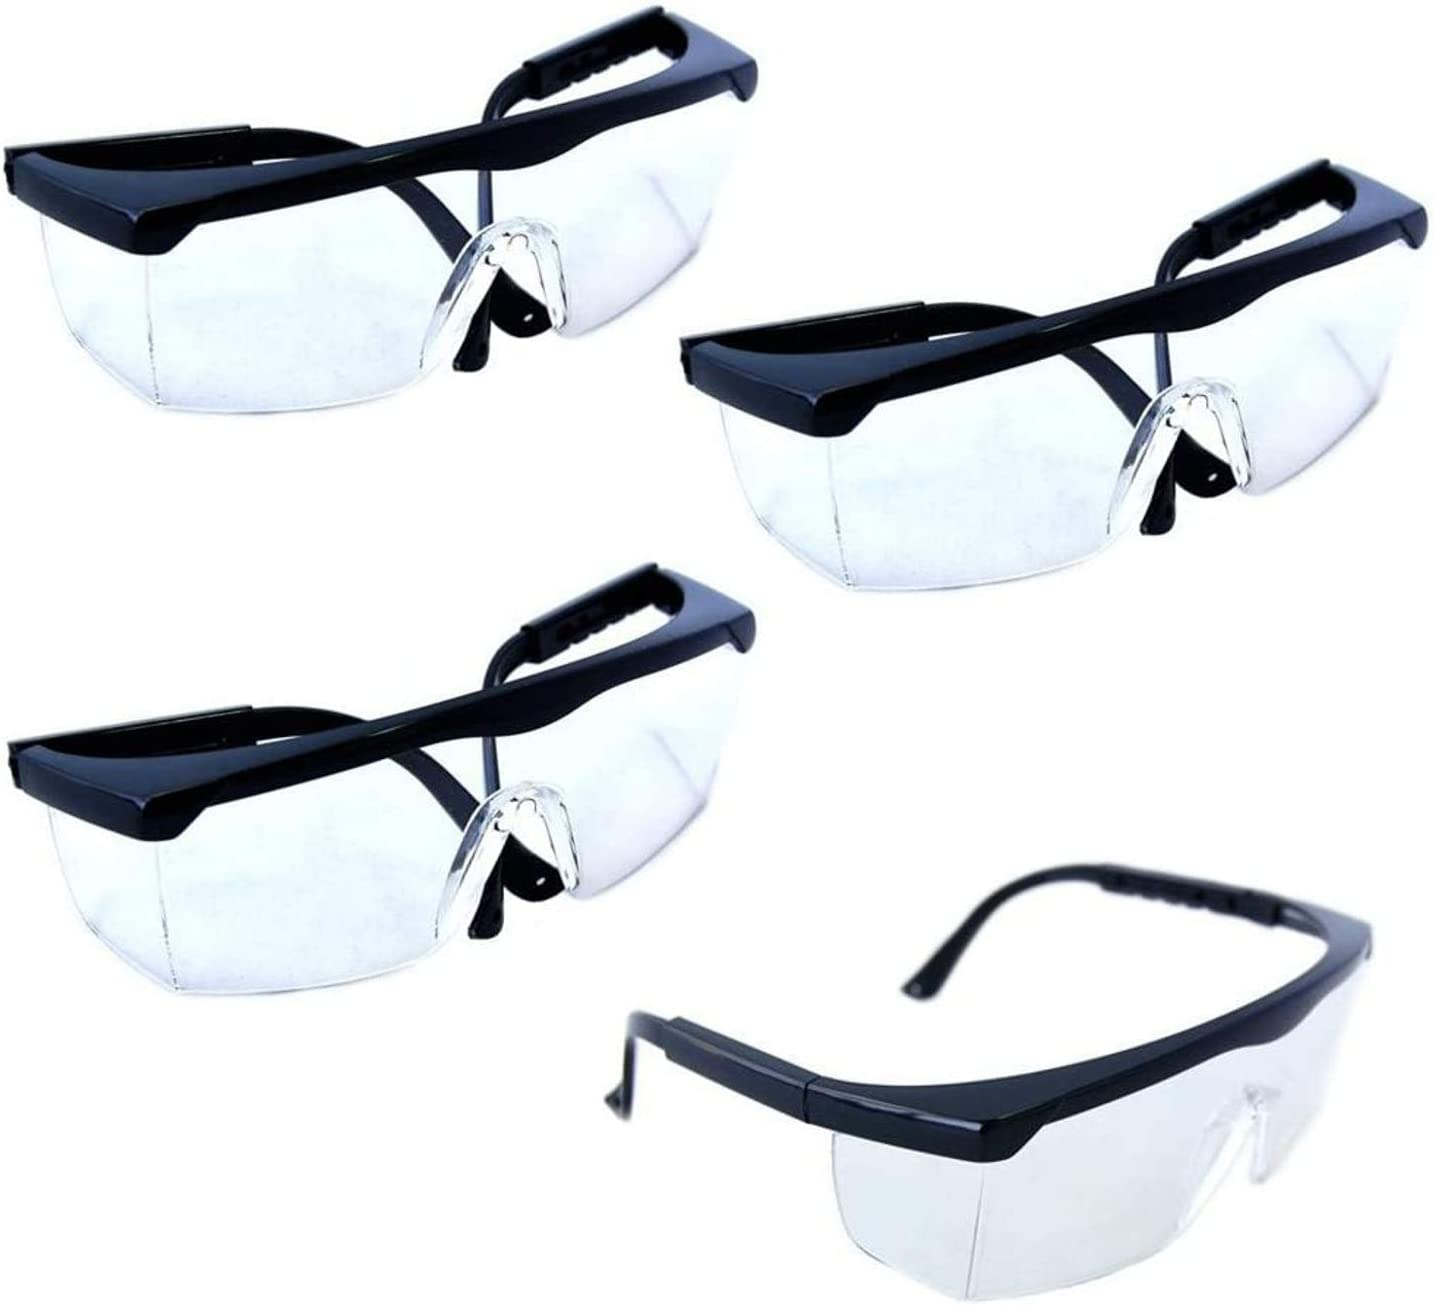 HQRP 4-pack Sales Clear Lenses Protective Safety for Goggles Glasses L Topics on TV